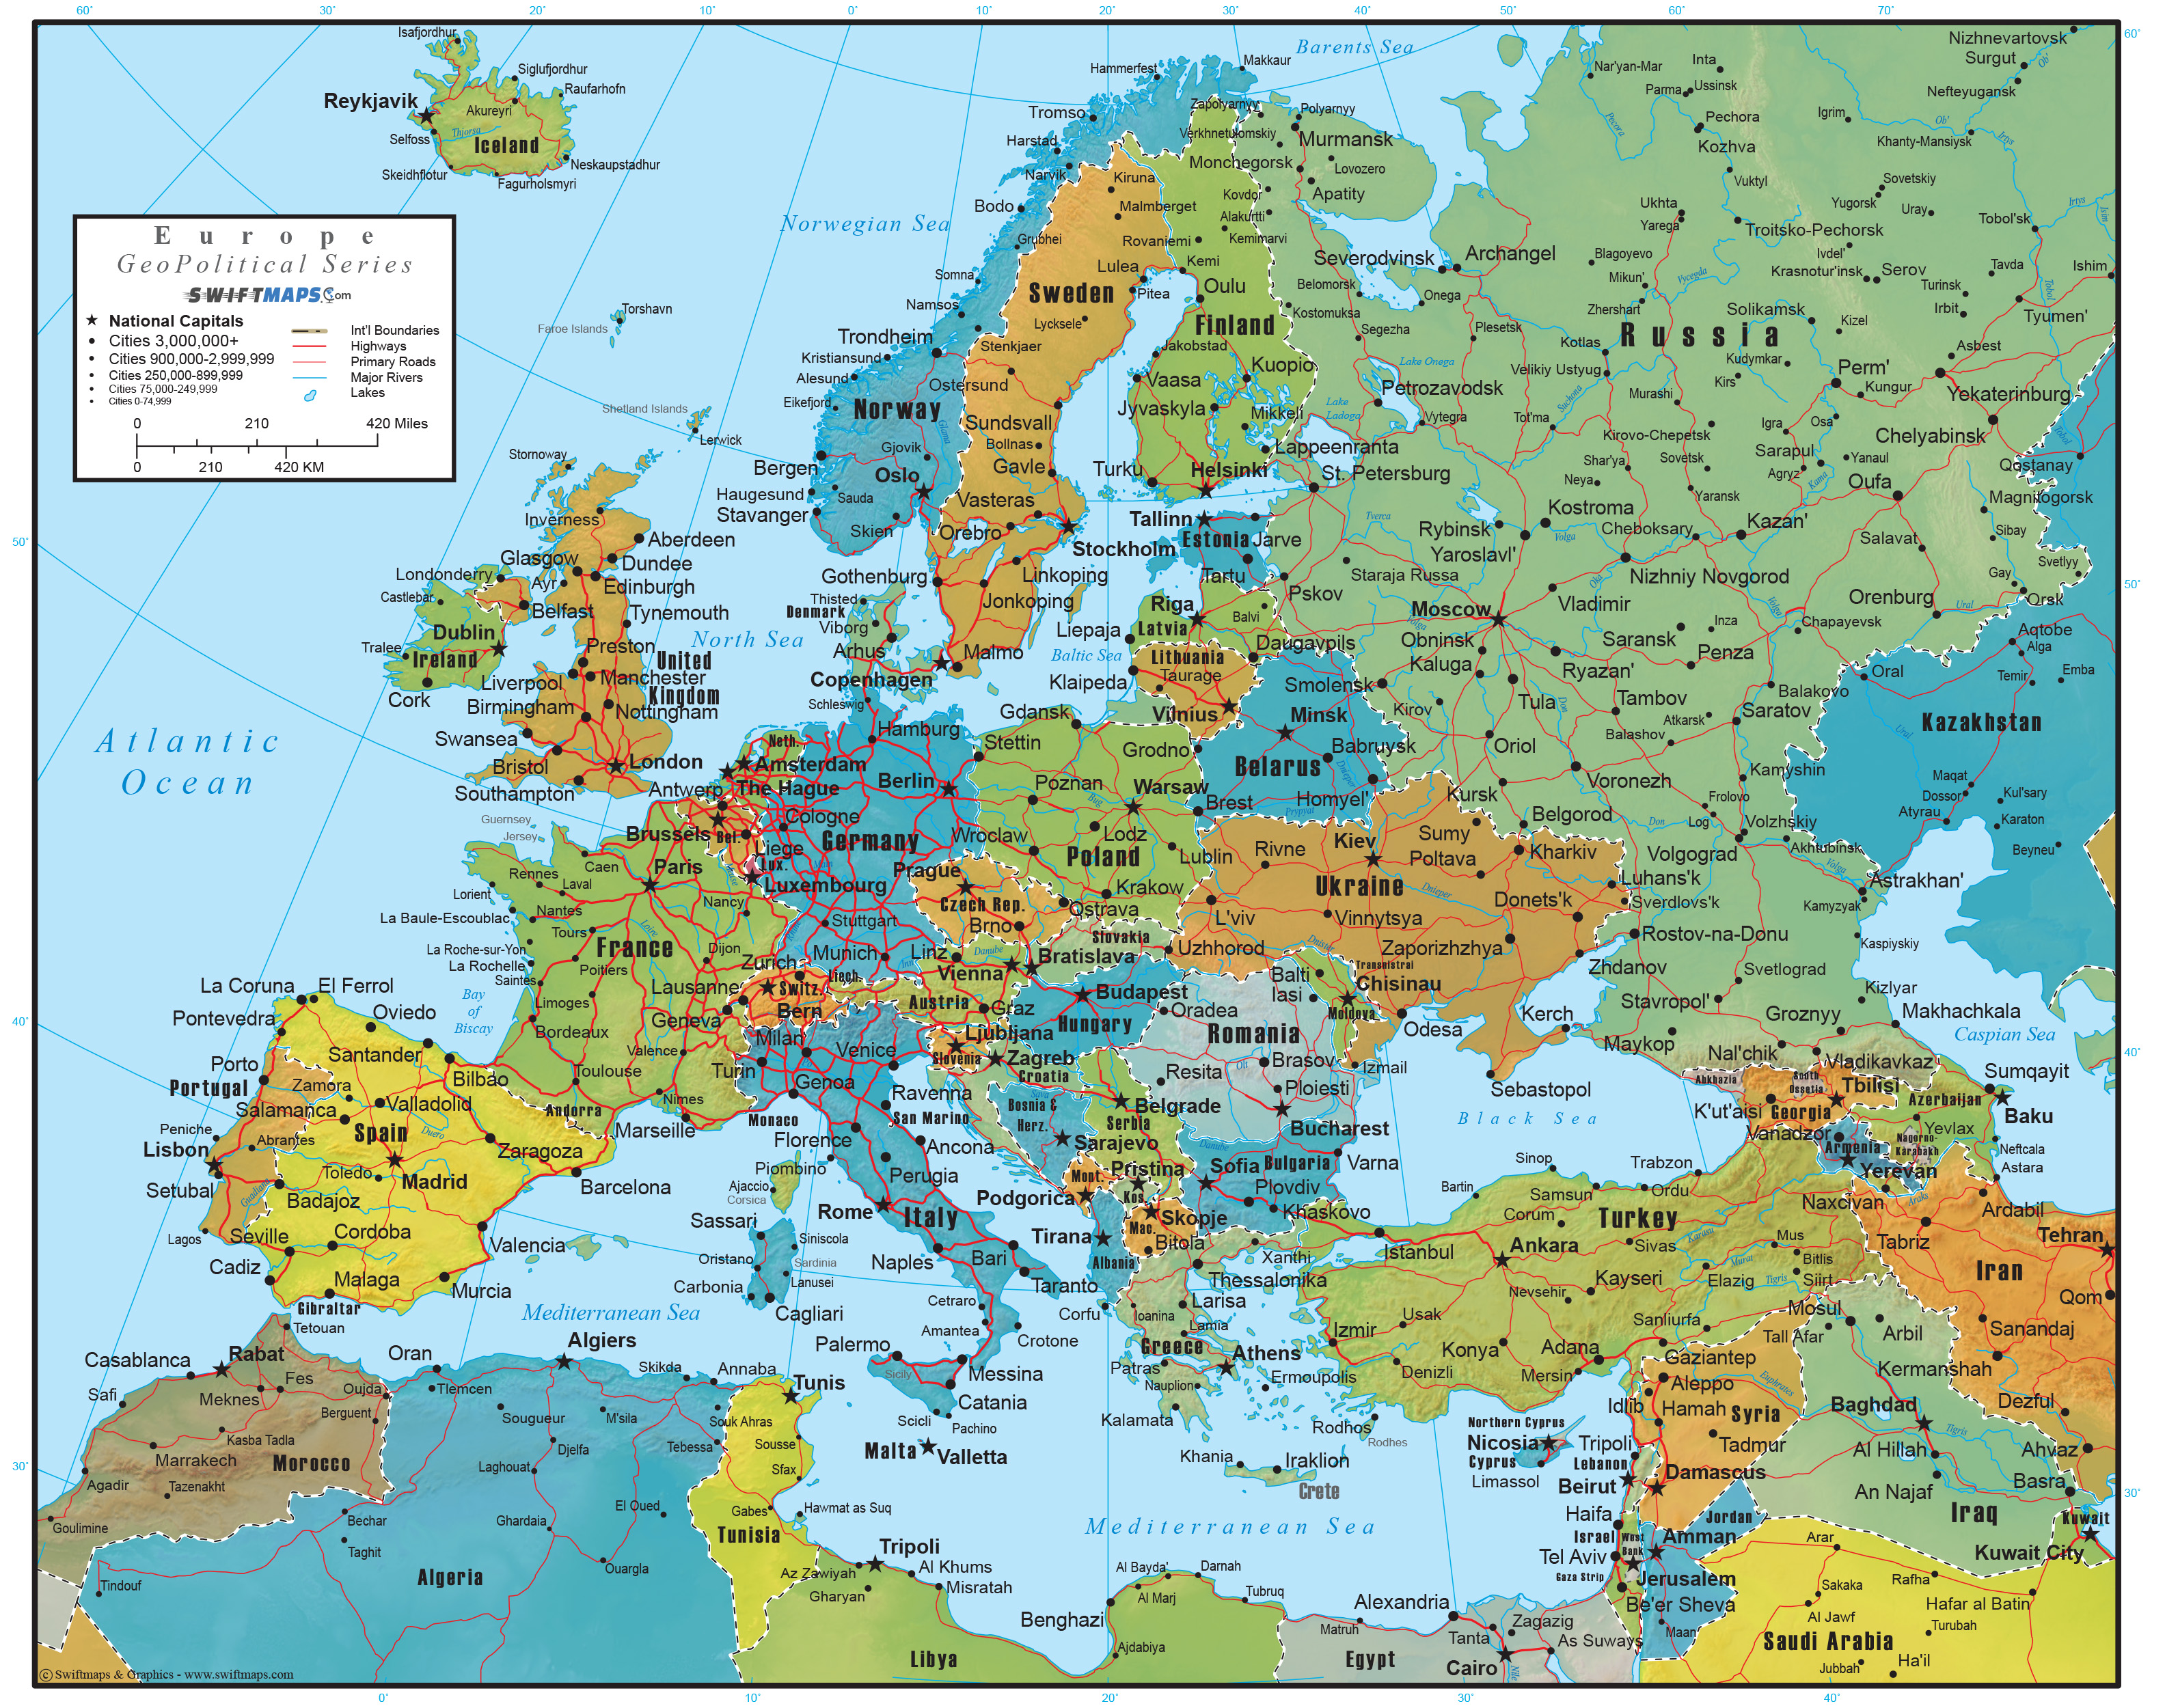 europe wall map geopolitical deluxe edition